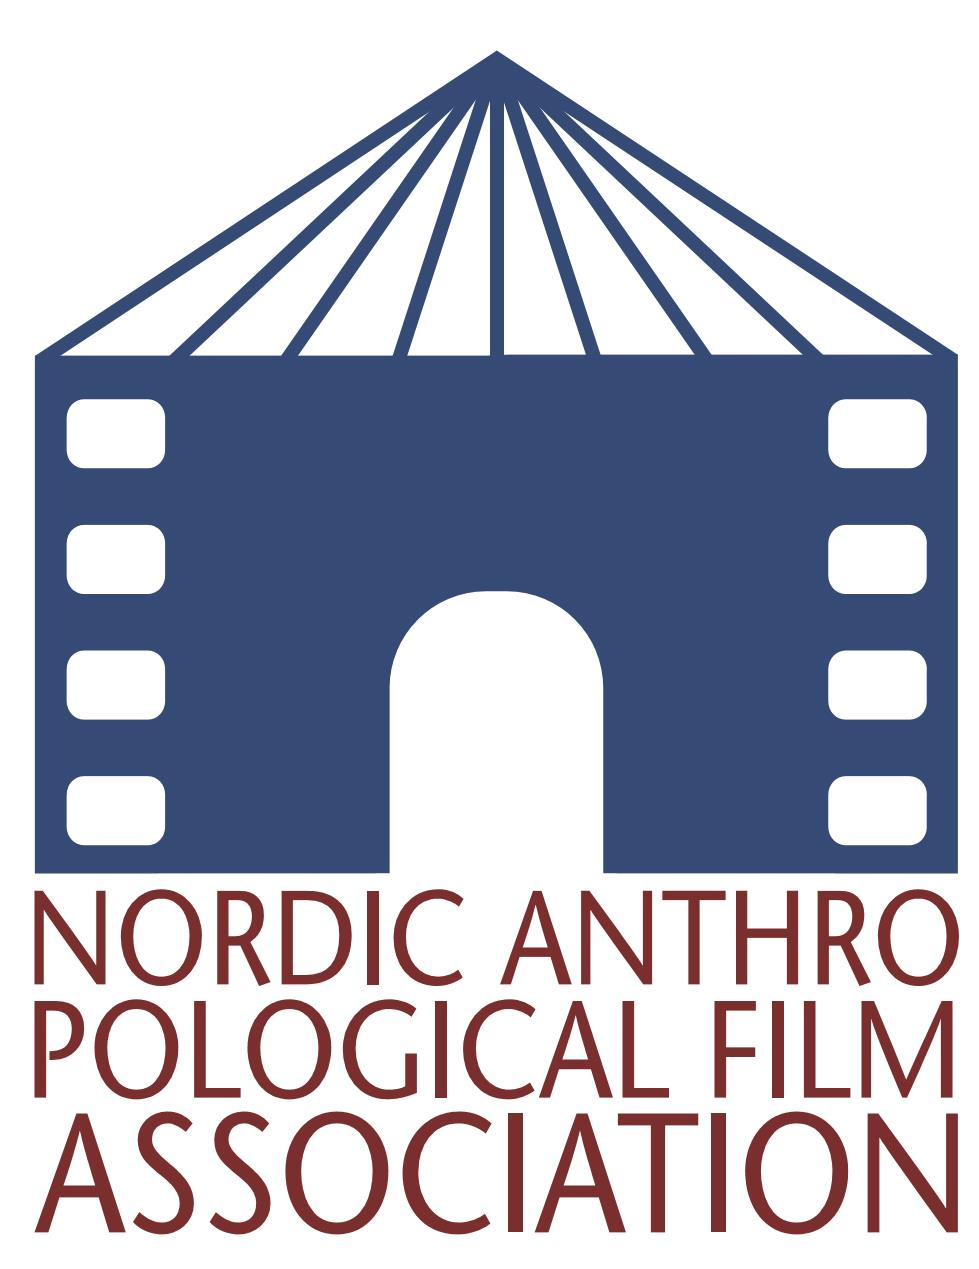 Nordic Anthropological Film Association International Ethnographic Film Festival